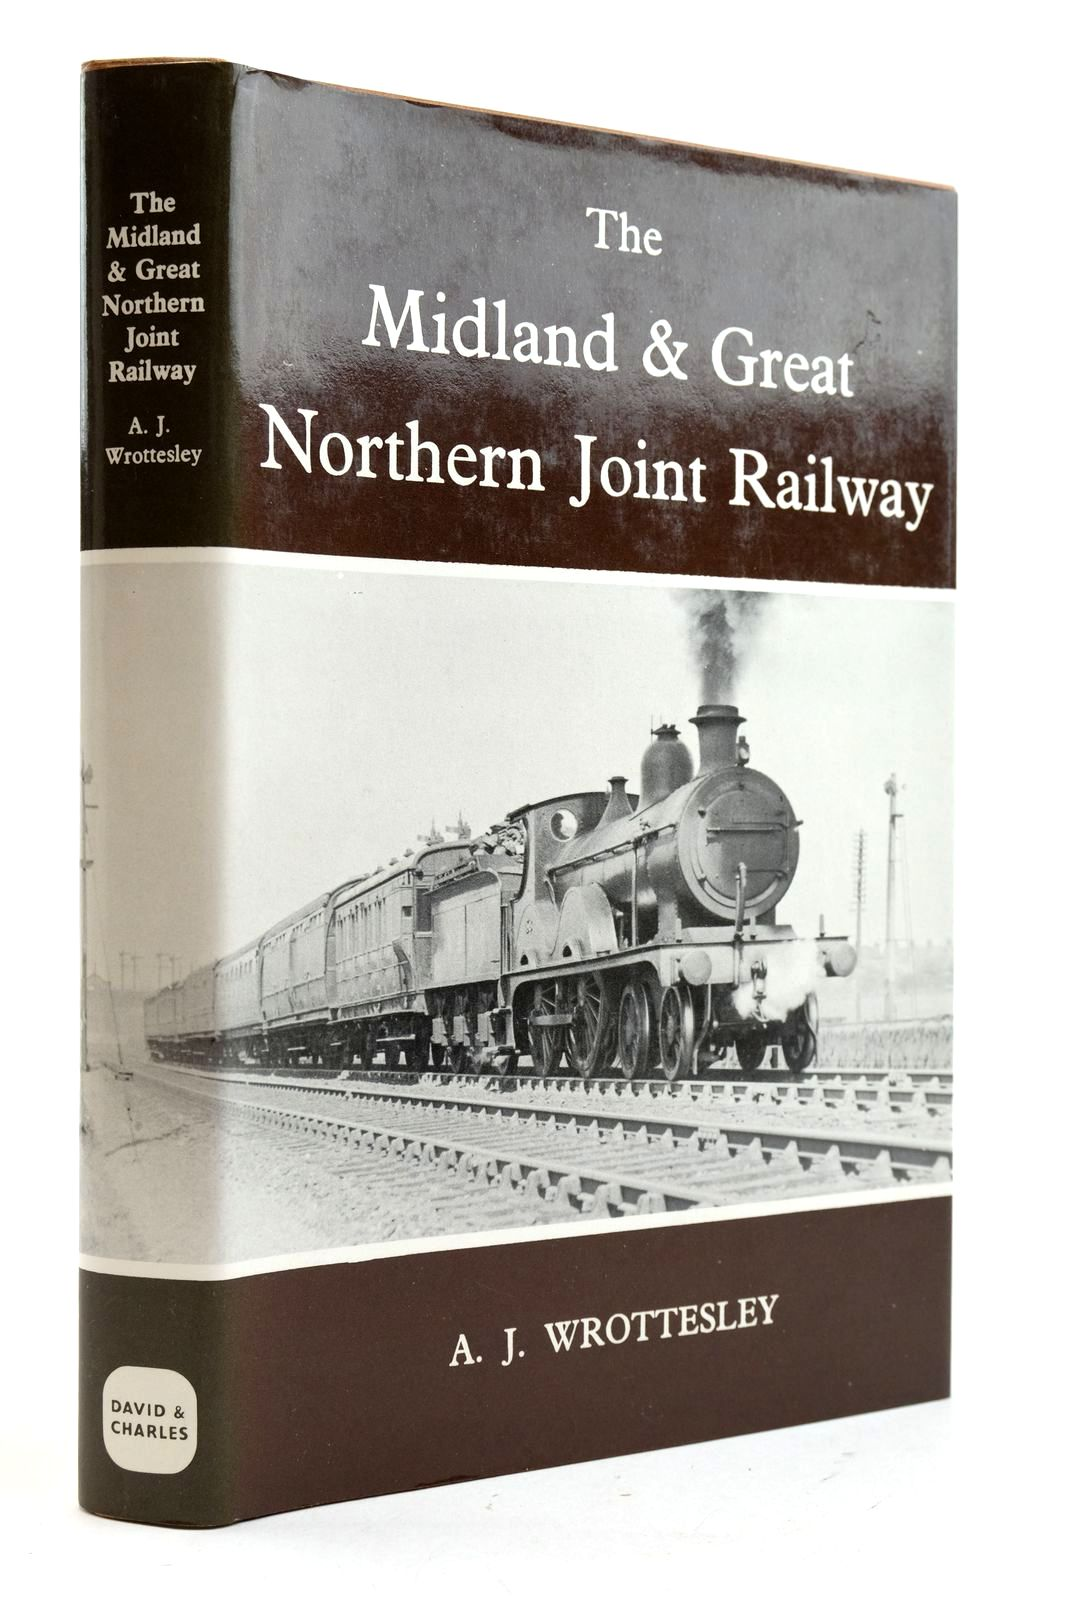 Photo of THE MIDLAND & GREAT NORTHERN JOINT RAILWAY written by Wrottesley, A.J. published by David & Charles (STOCK CODE: 2133045)  for sale by Stella & Rose's Books